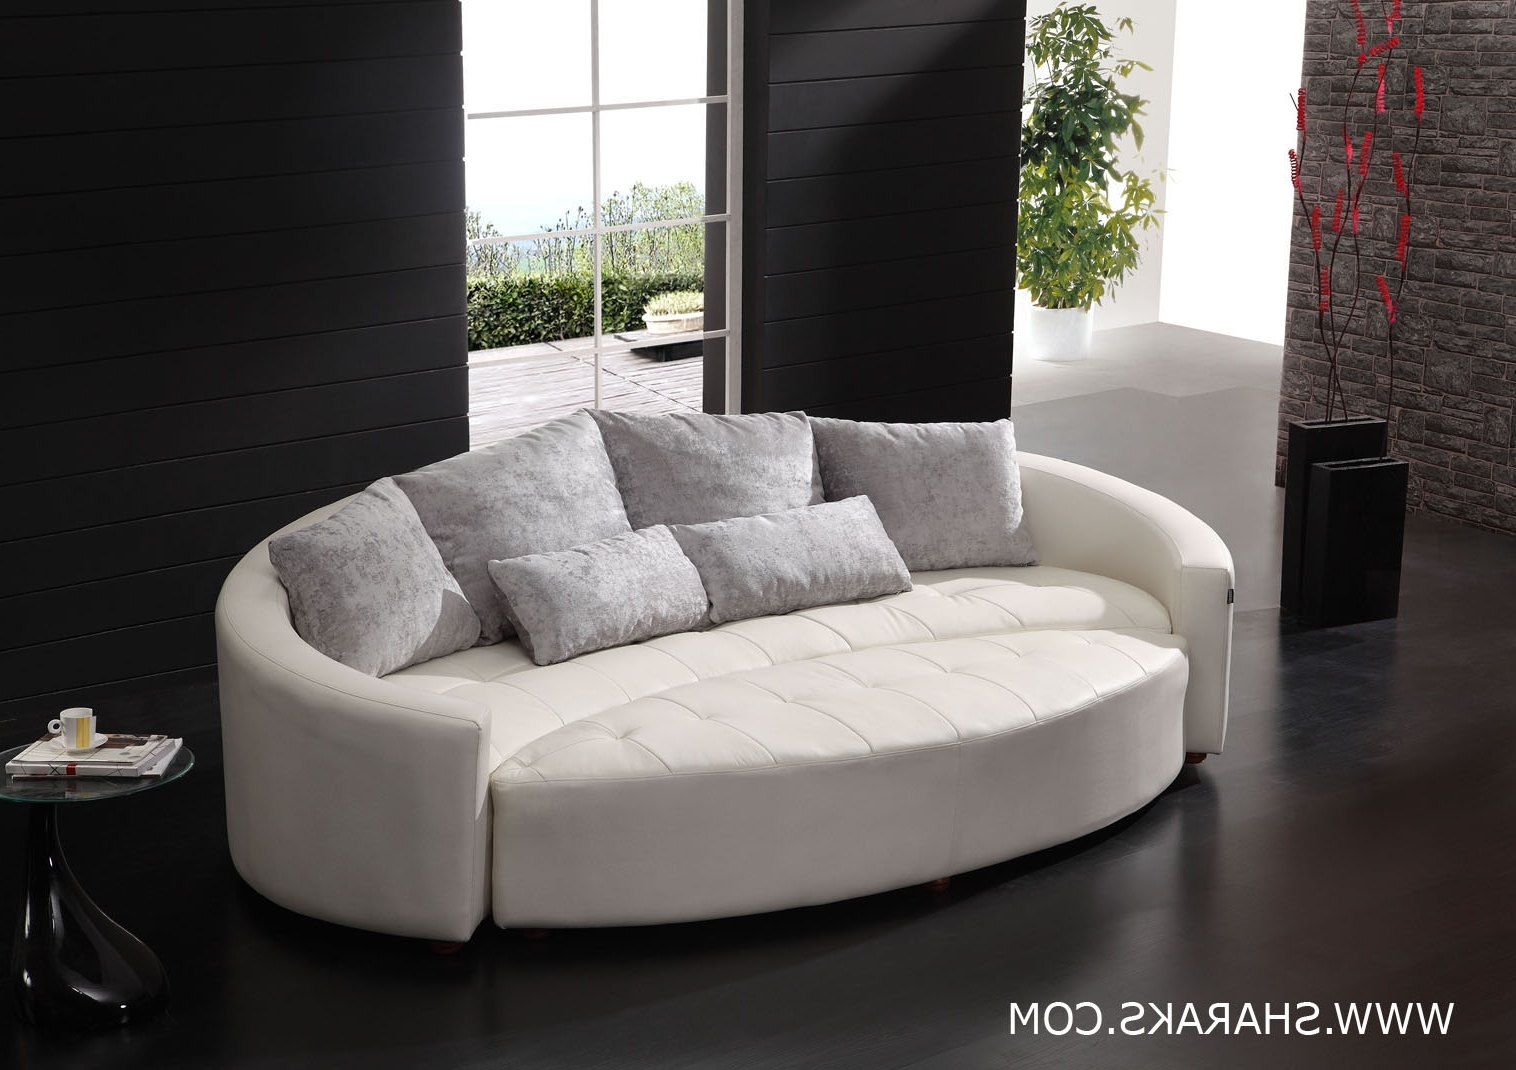 Popular Awesome Round Lounge Couch 26 About Remodel Modern Sofa Intended For Round Sofas (View 4 of 20)